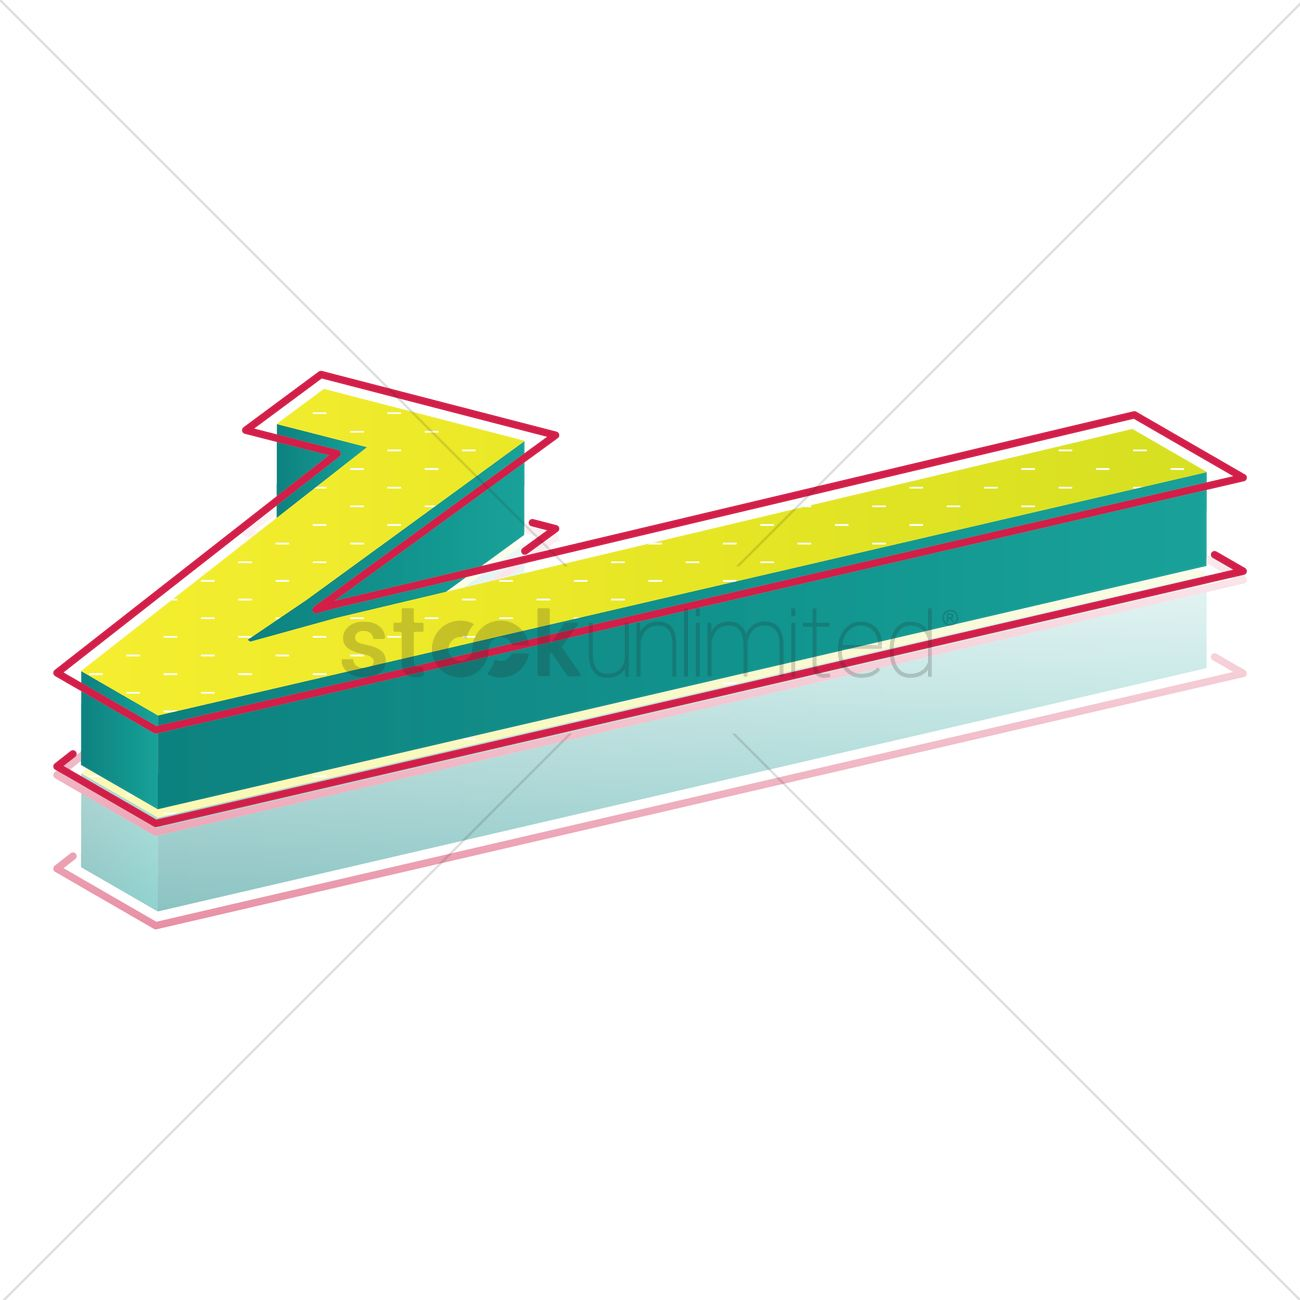 3d Square Root Symbol Vector Image 1827819 Stockunlimited